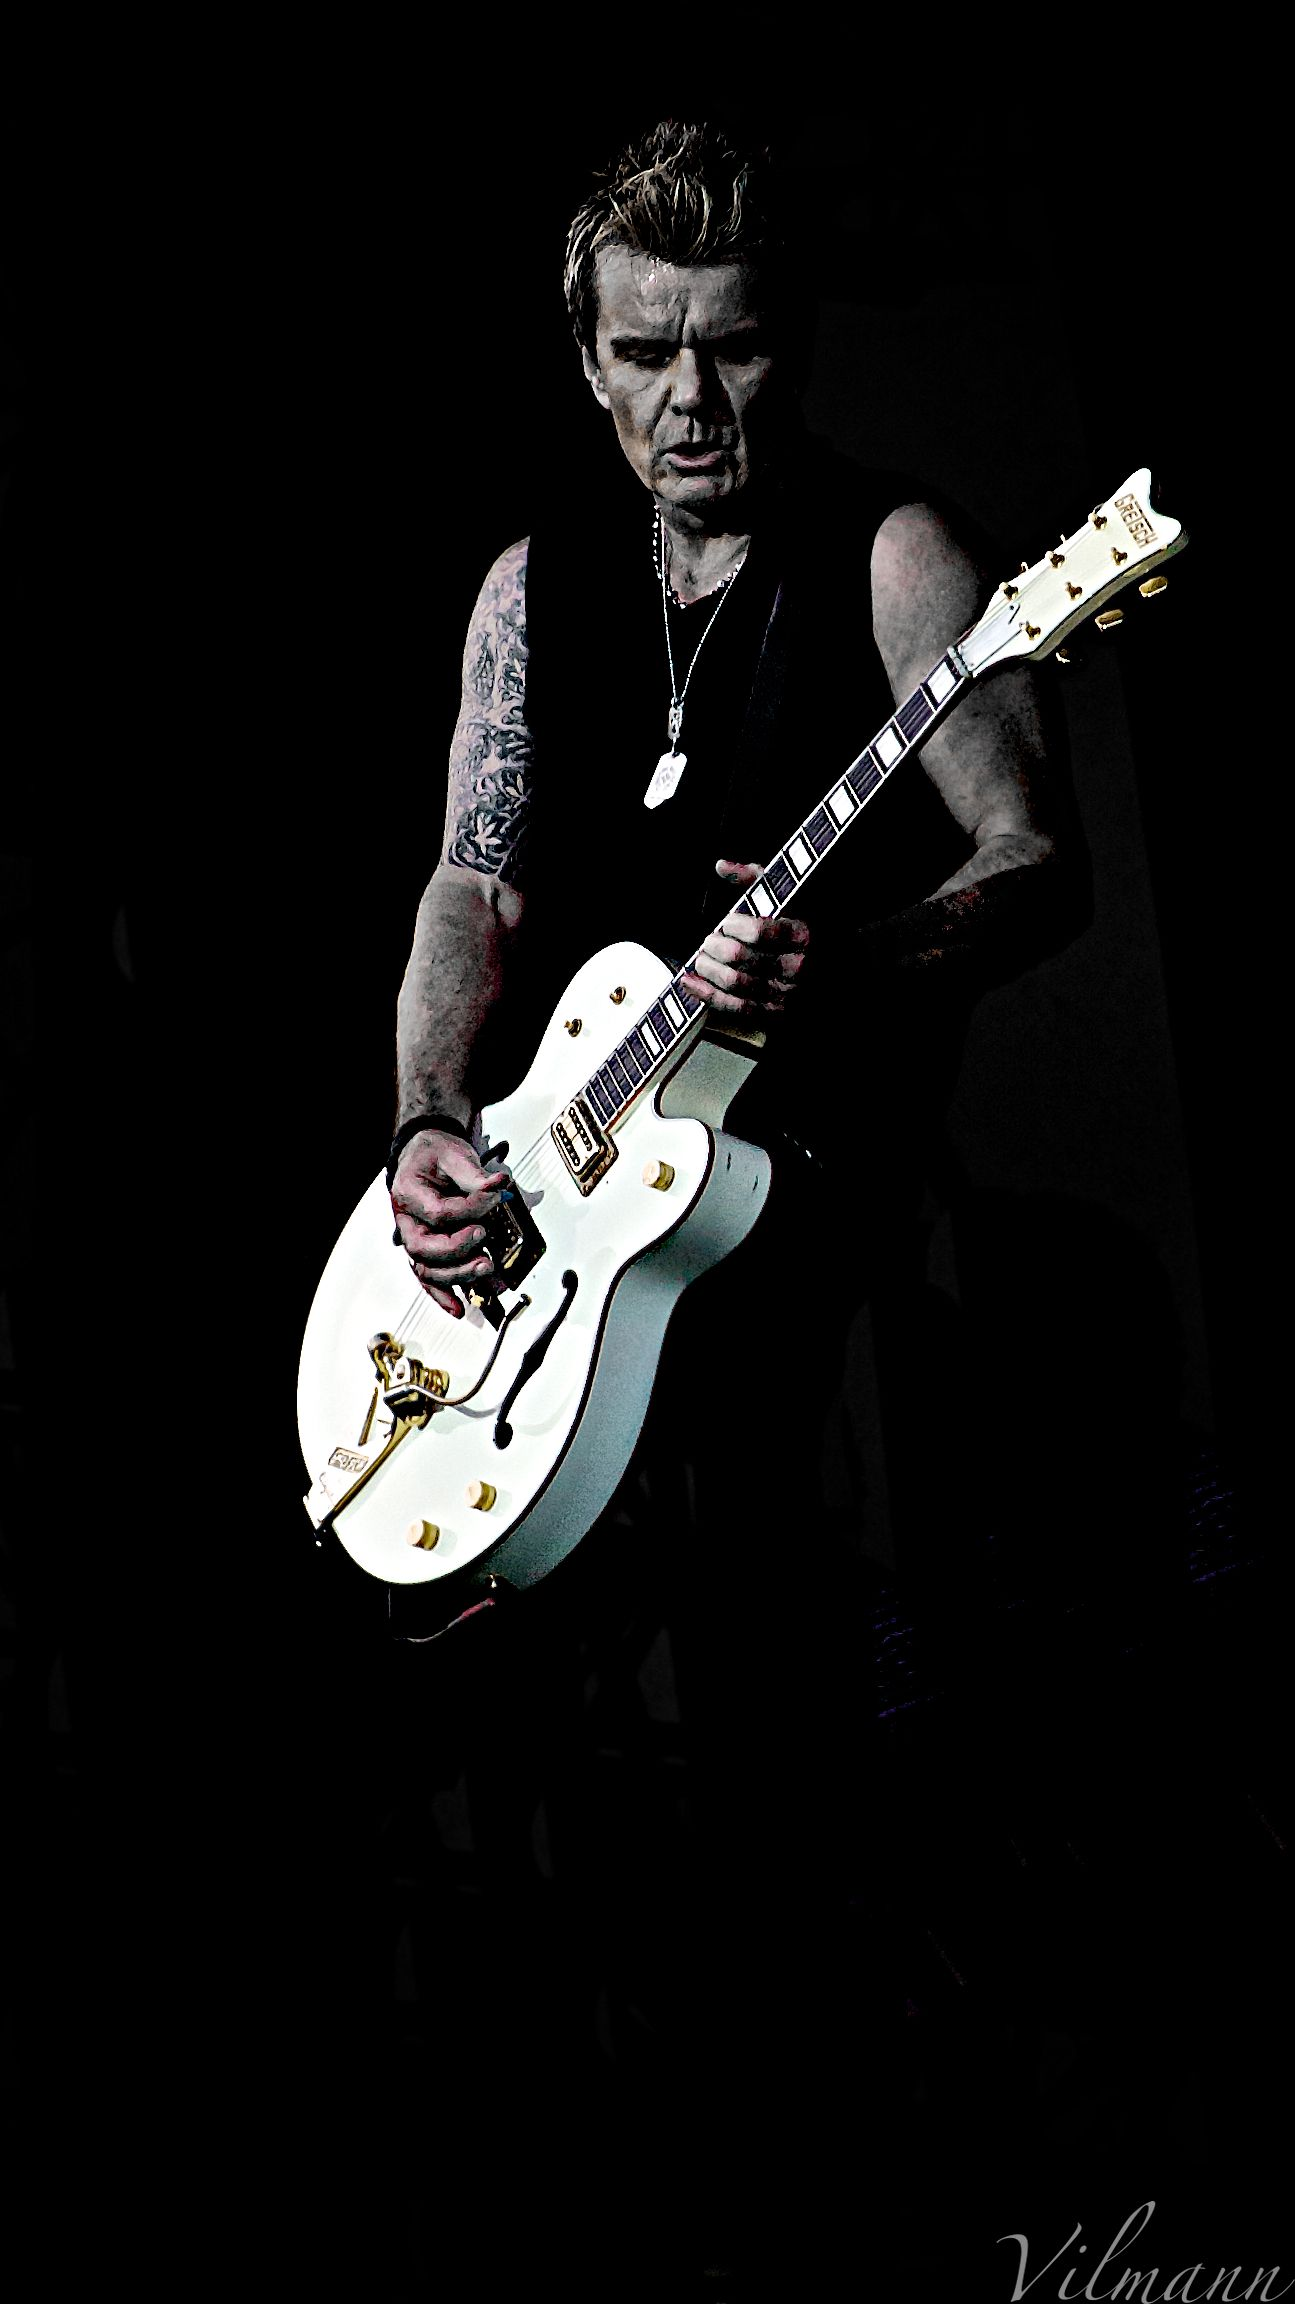 b3948802e Billy Duffy and the famous white guitar | Way Cool Rock'n Roll ...